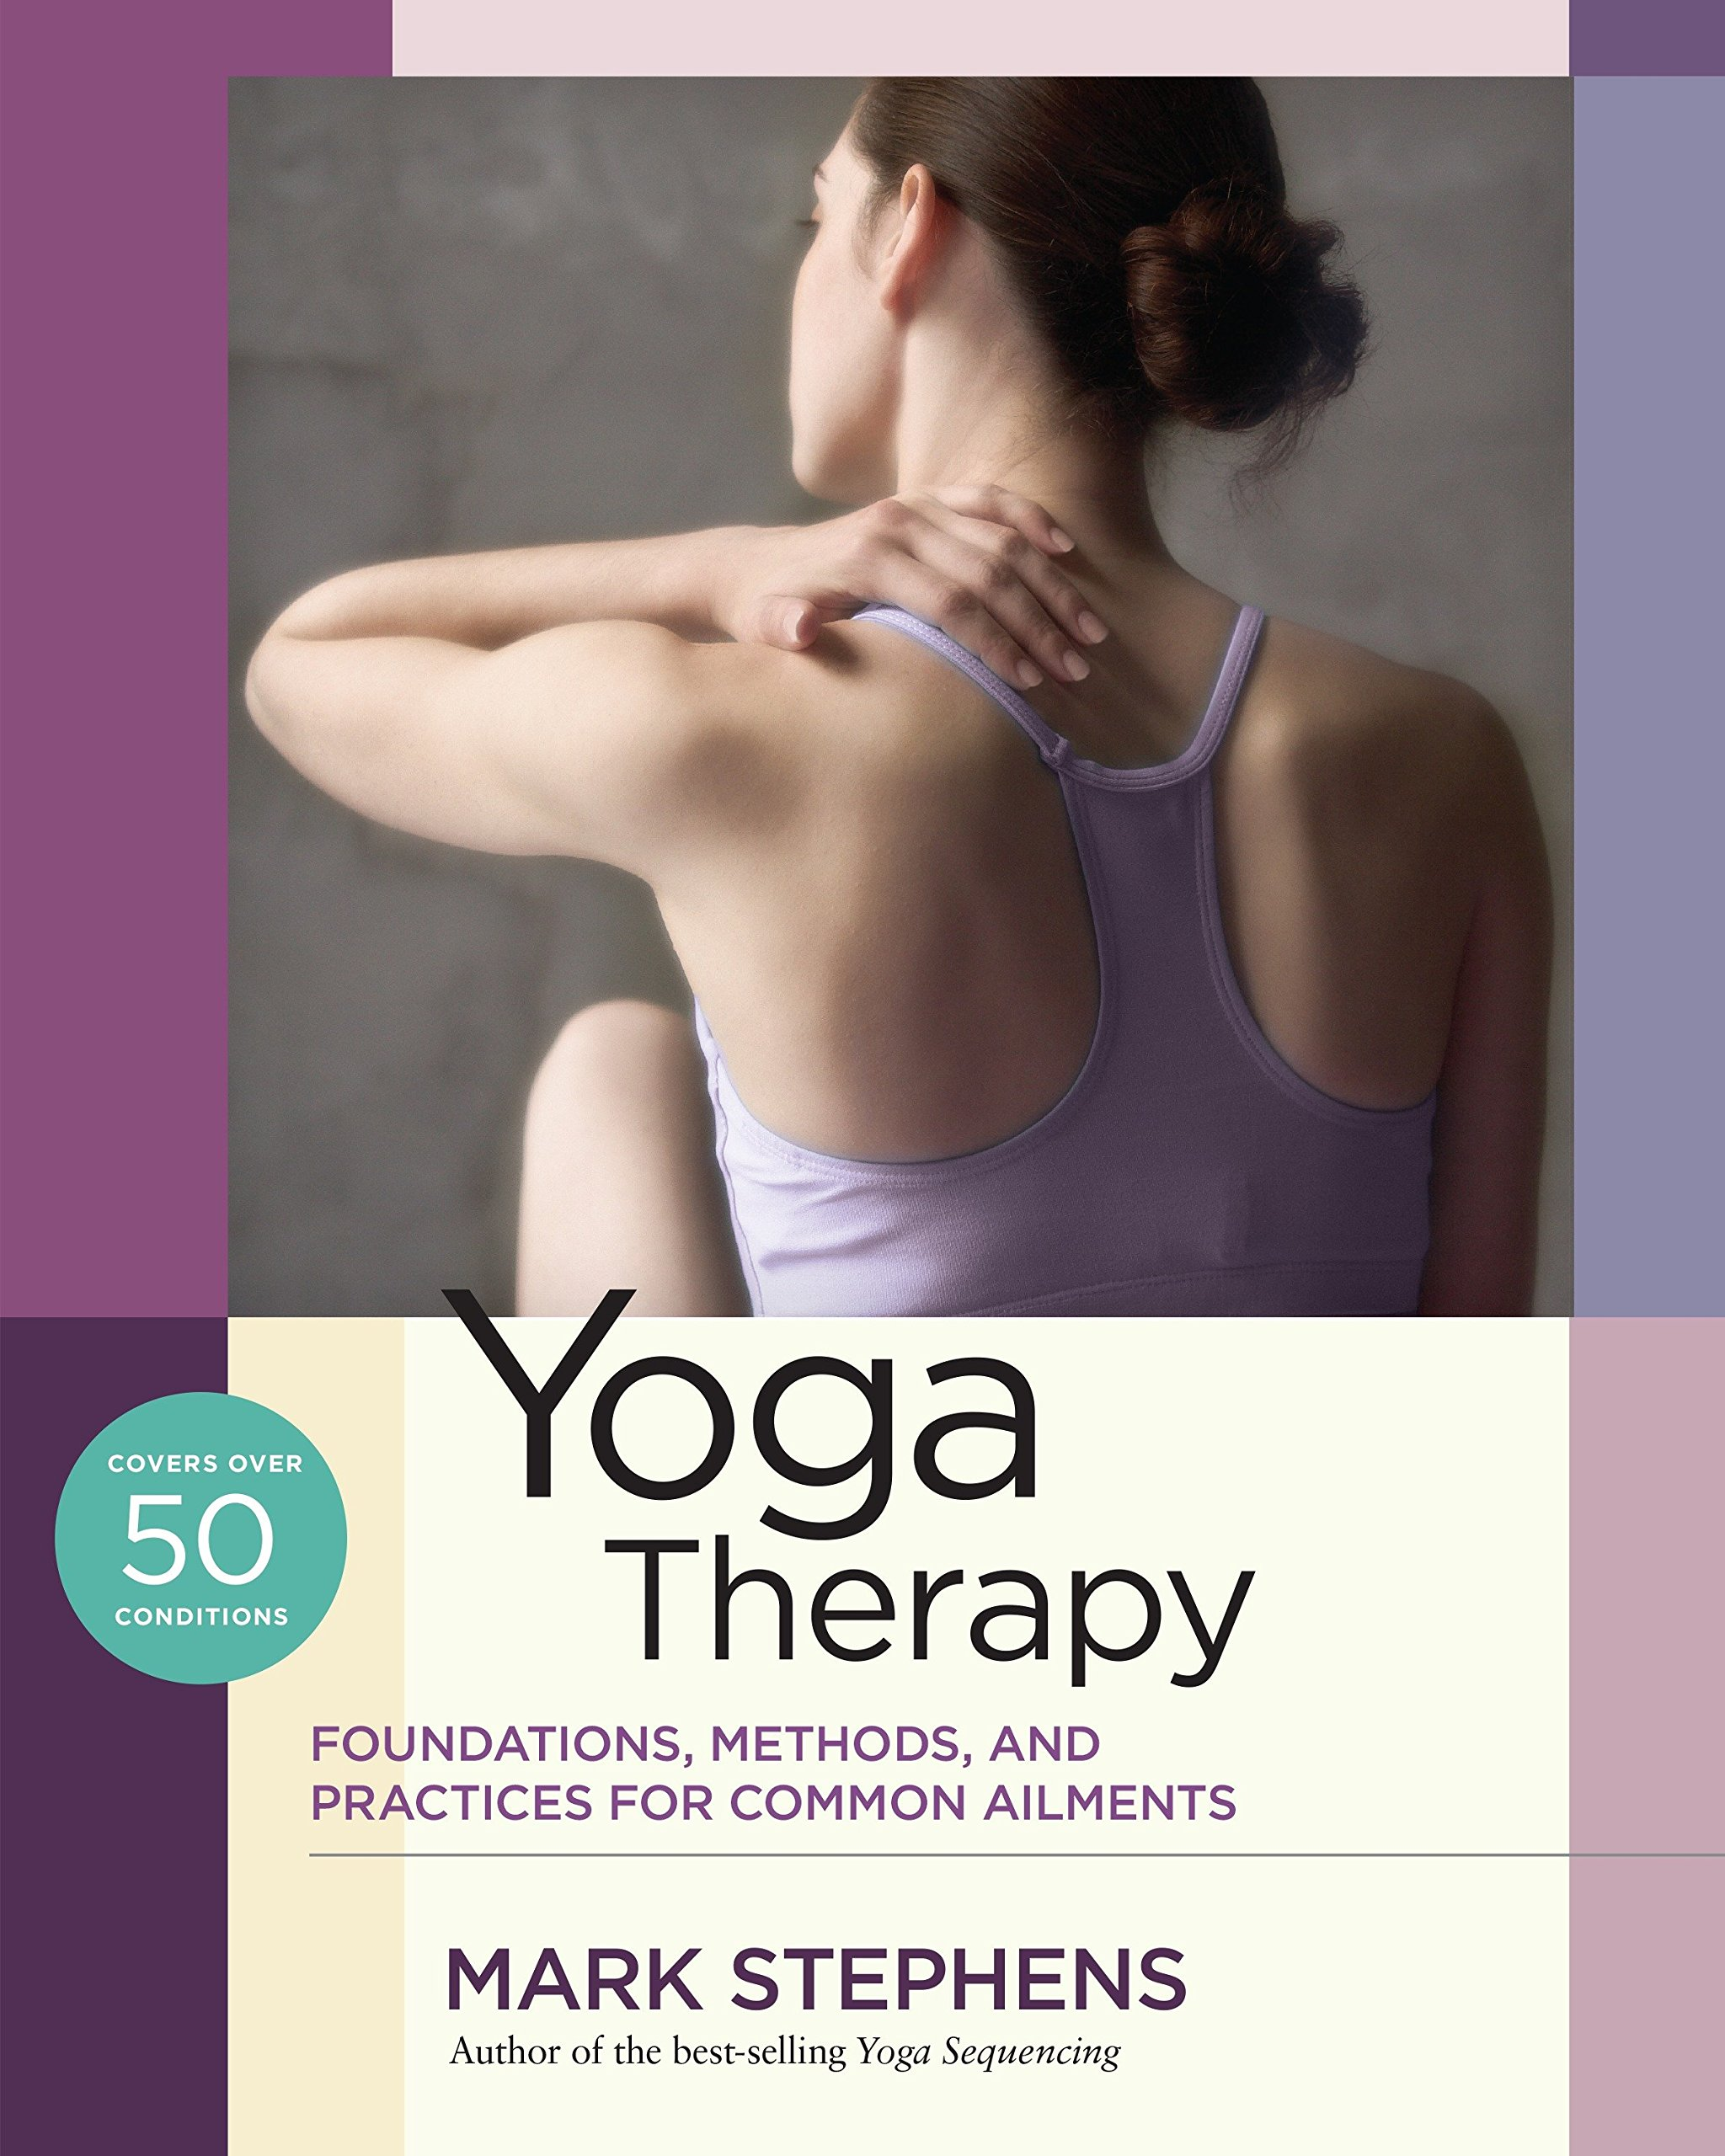 Yoga Therapy: Practices for Common Ailments: Amazon.es: Mark ...